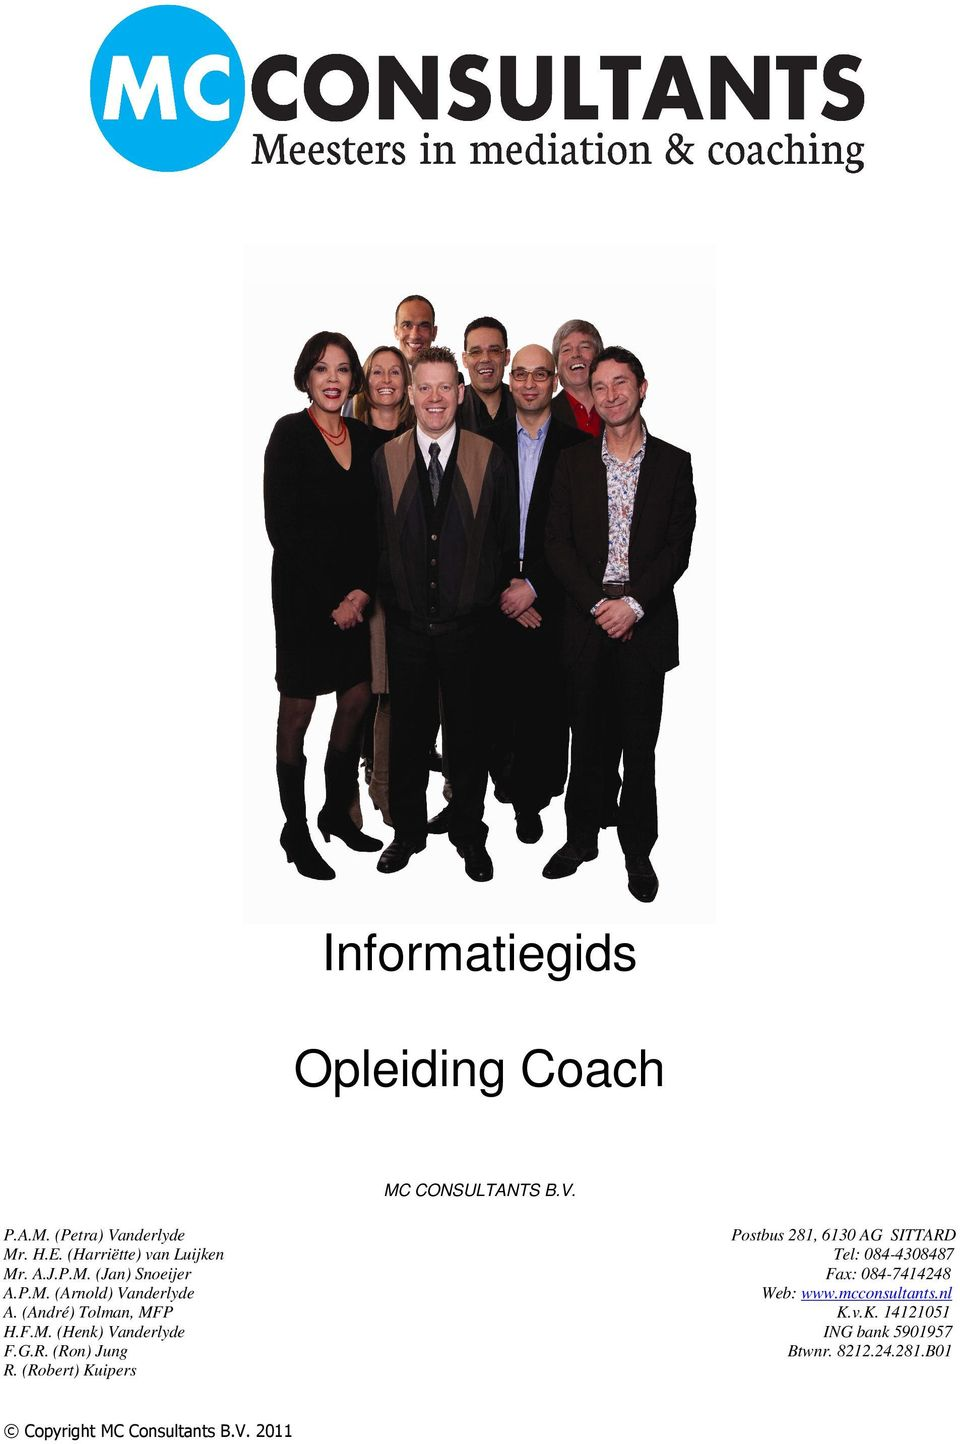 G.R. (Ron) Jung R. (Robert) Kuipers Copyright MC Consultants B.V.